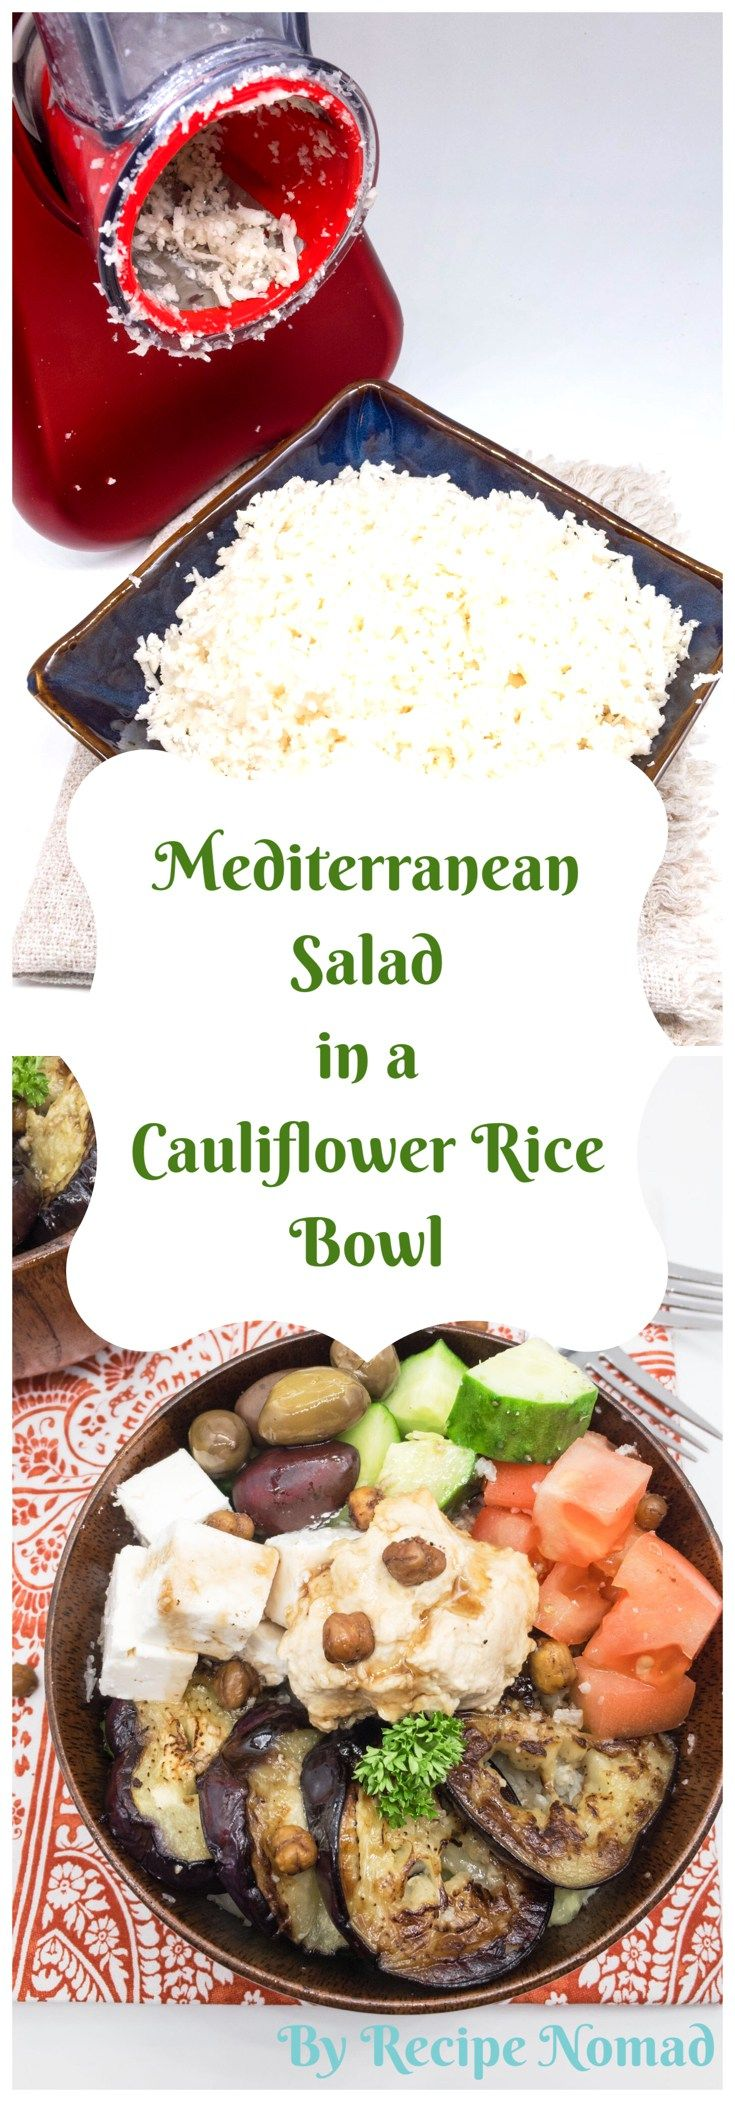 The ultimate healthy meal, Mediterranean Salad in a Cauliflower Rice Bowl will keep you full all day! Just add a dollop of humus and some roasted chickpeas!  http://www.recipenomad.com/lebanese-eggplant-in-a-cauliflower-rice-bowl/  Mediterranean Salad in a Cauliflower Rice Bowl | Recipe Nomad